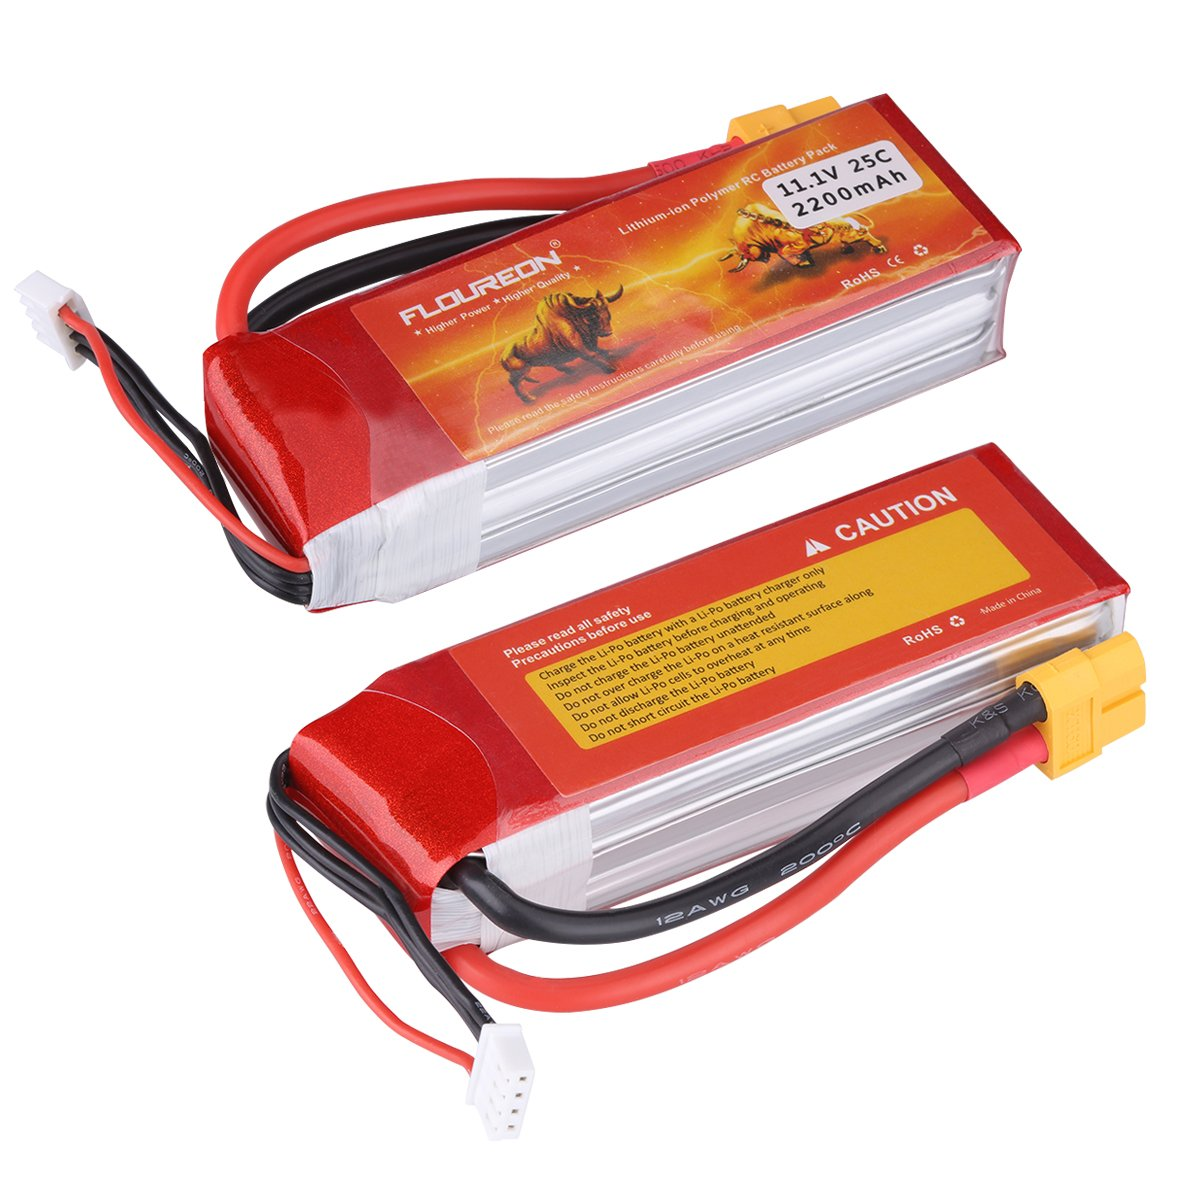 FLOUREON Lipo 3S 25C 11.1V 2200mAh XT60 Plug Rechargeable RC Battery Pack for RC Car Truck RC Boat Traxxas Slash Flame Kyosho Racing Truck (2pack)